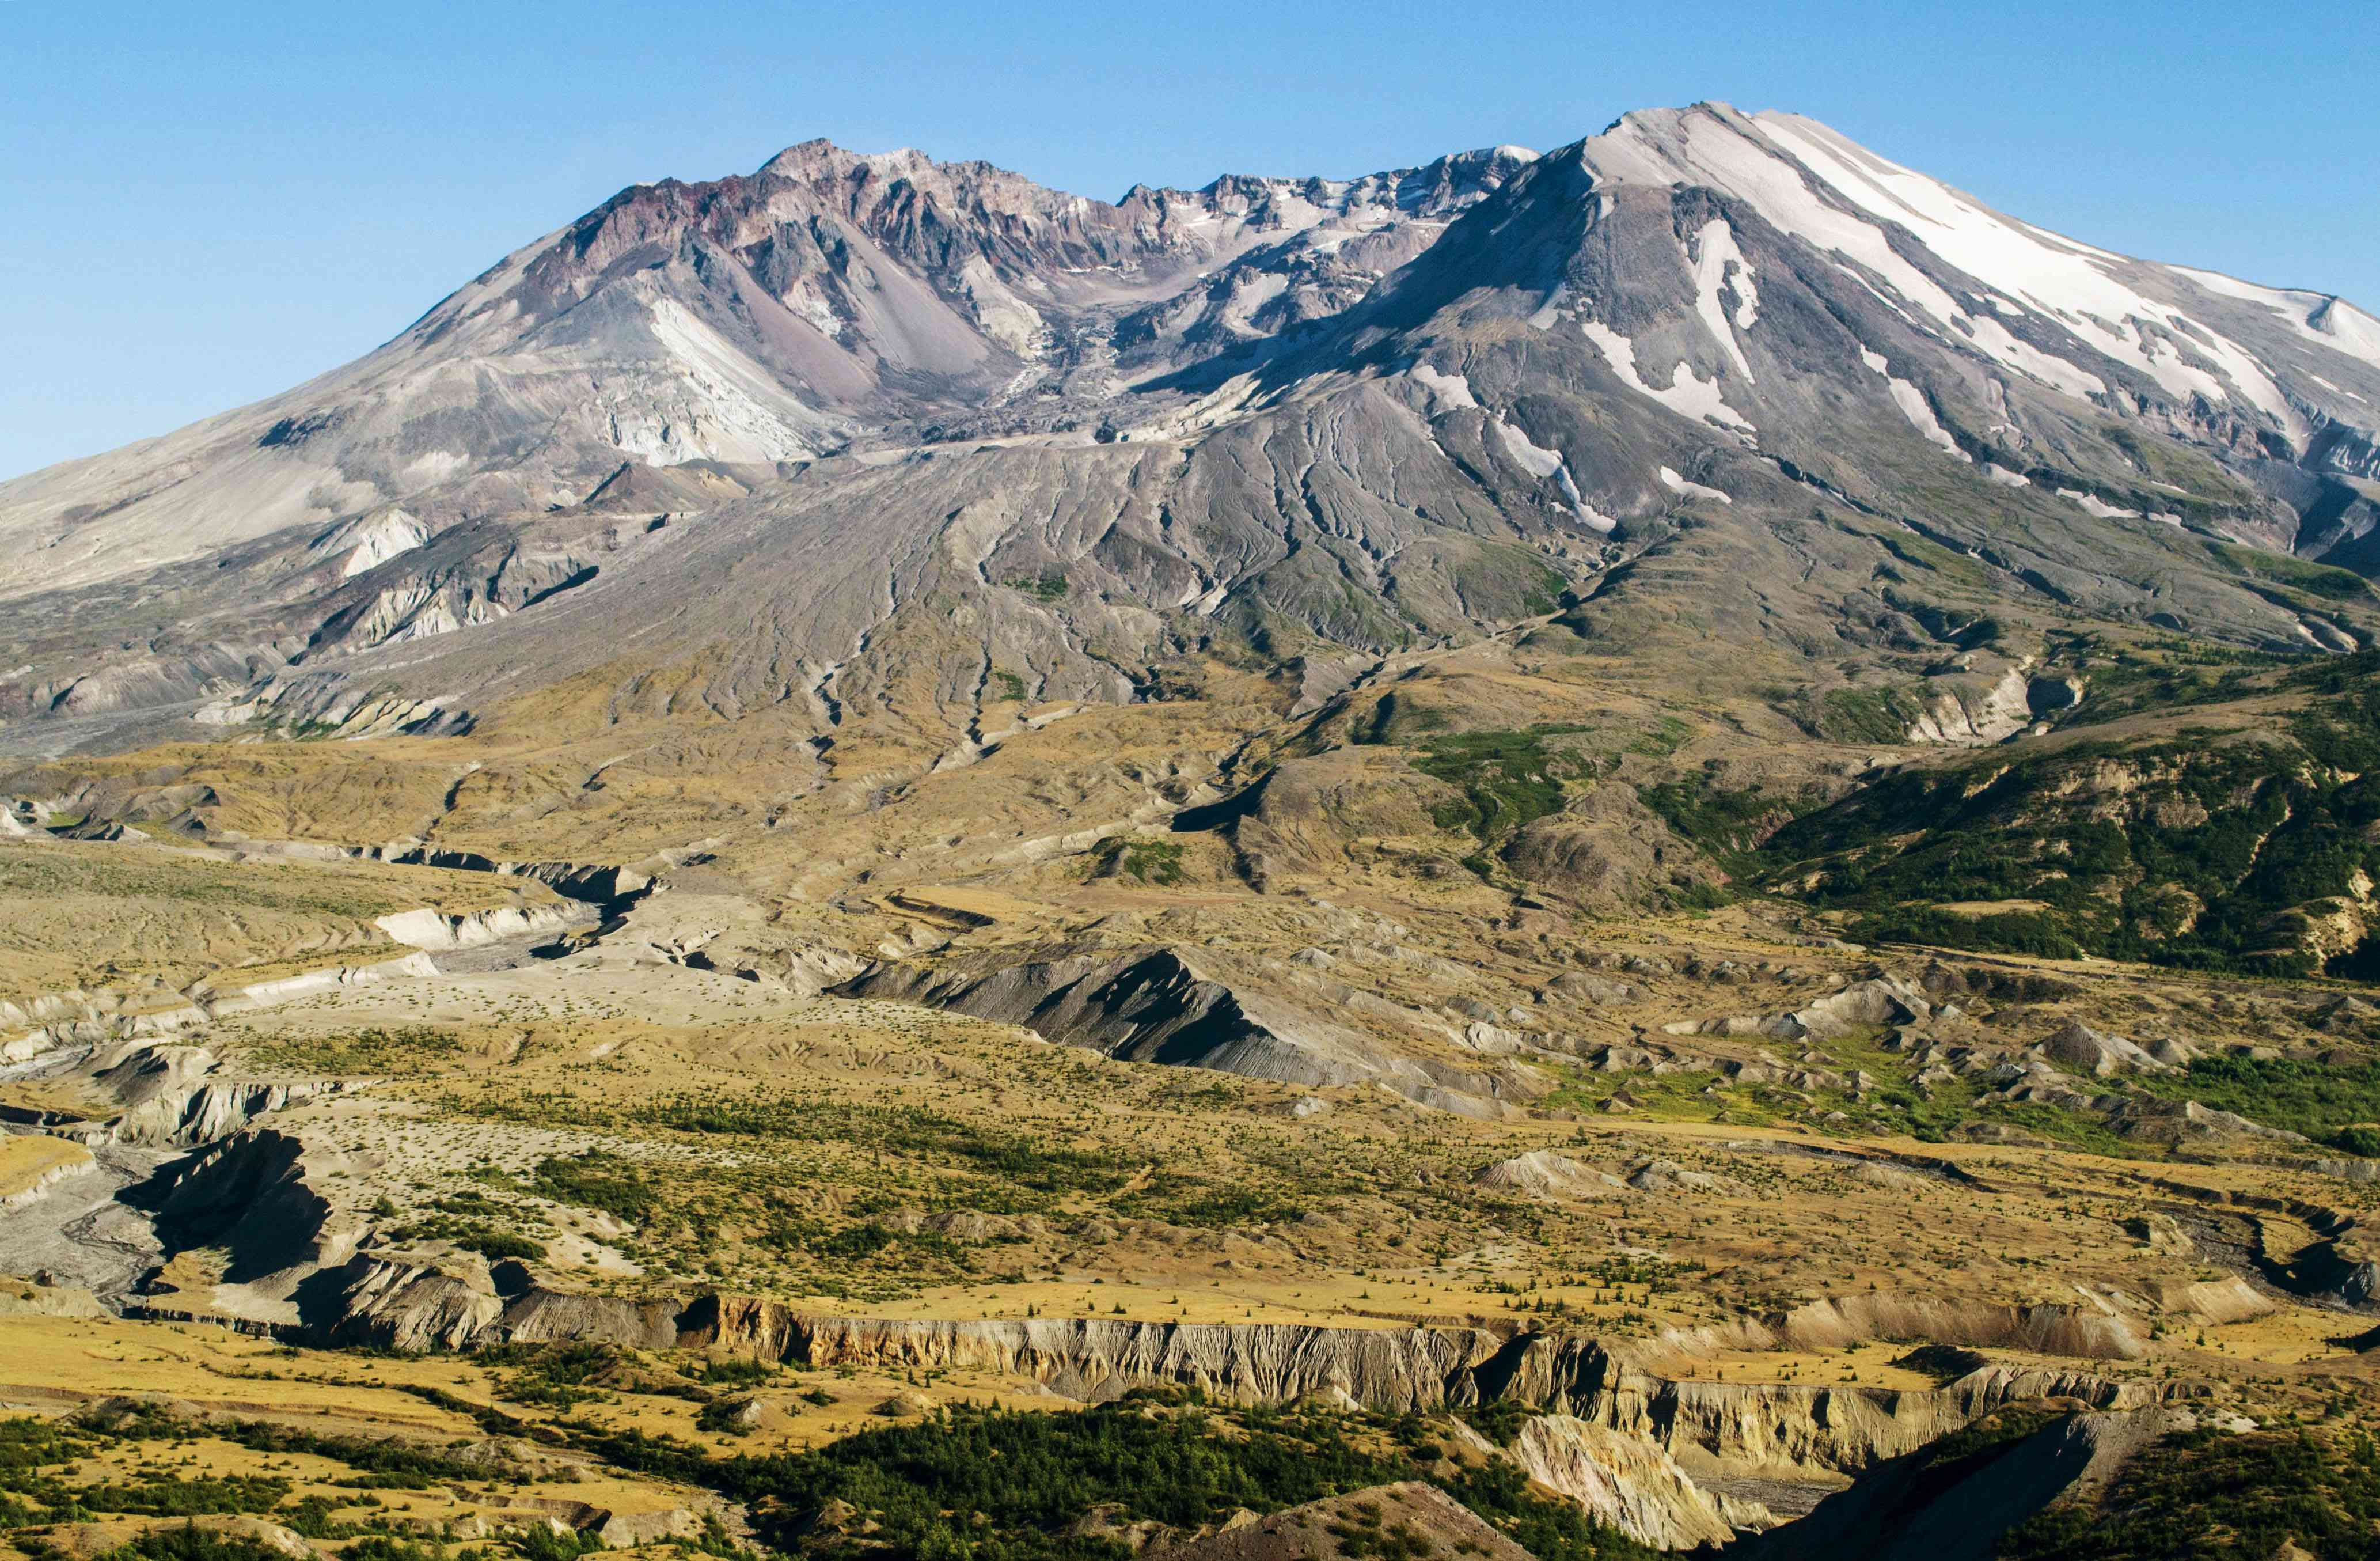 Wide shot of the crater of Mt St Helen's